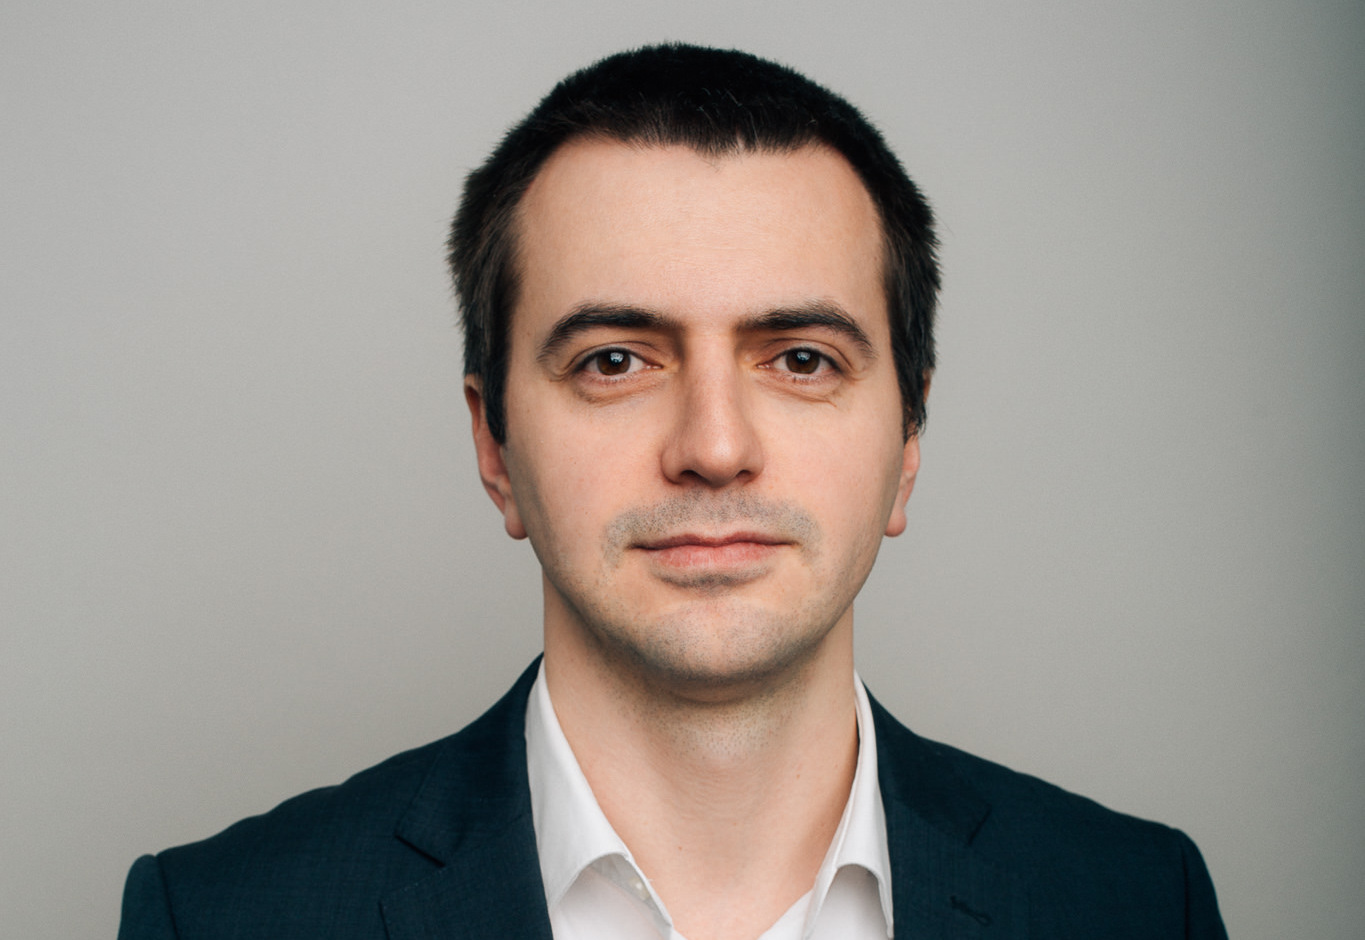 LINUS Digital Finance fills newly created position of Head of Finance with Illia Kostynian